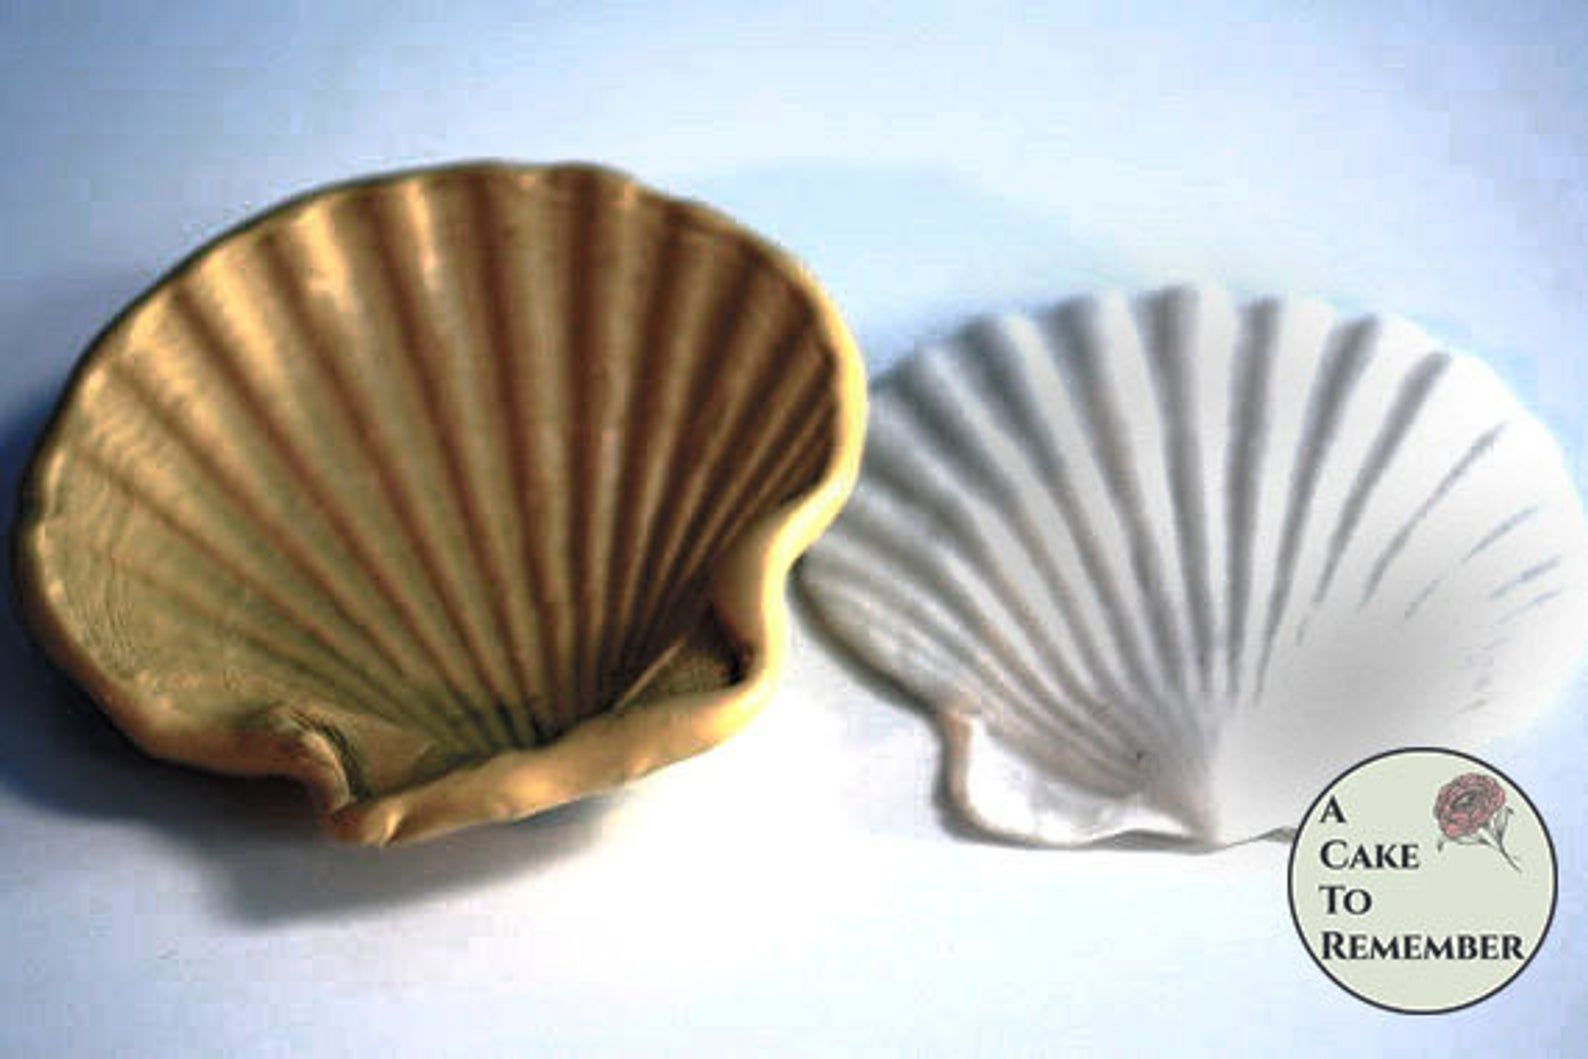 4 Clam Shell Silicone Mold For Cake Decorating Etsy Cake Decorating Beach Themed Cakes Silicone Molds